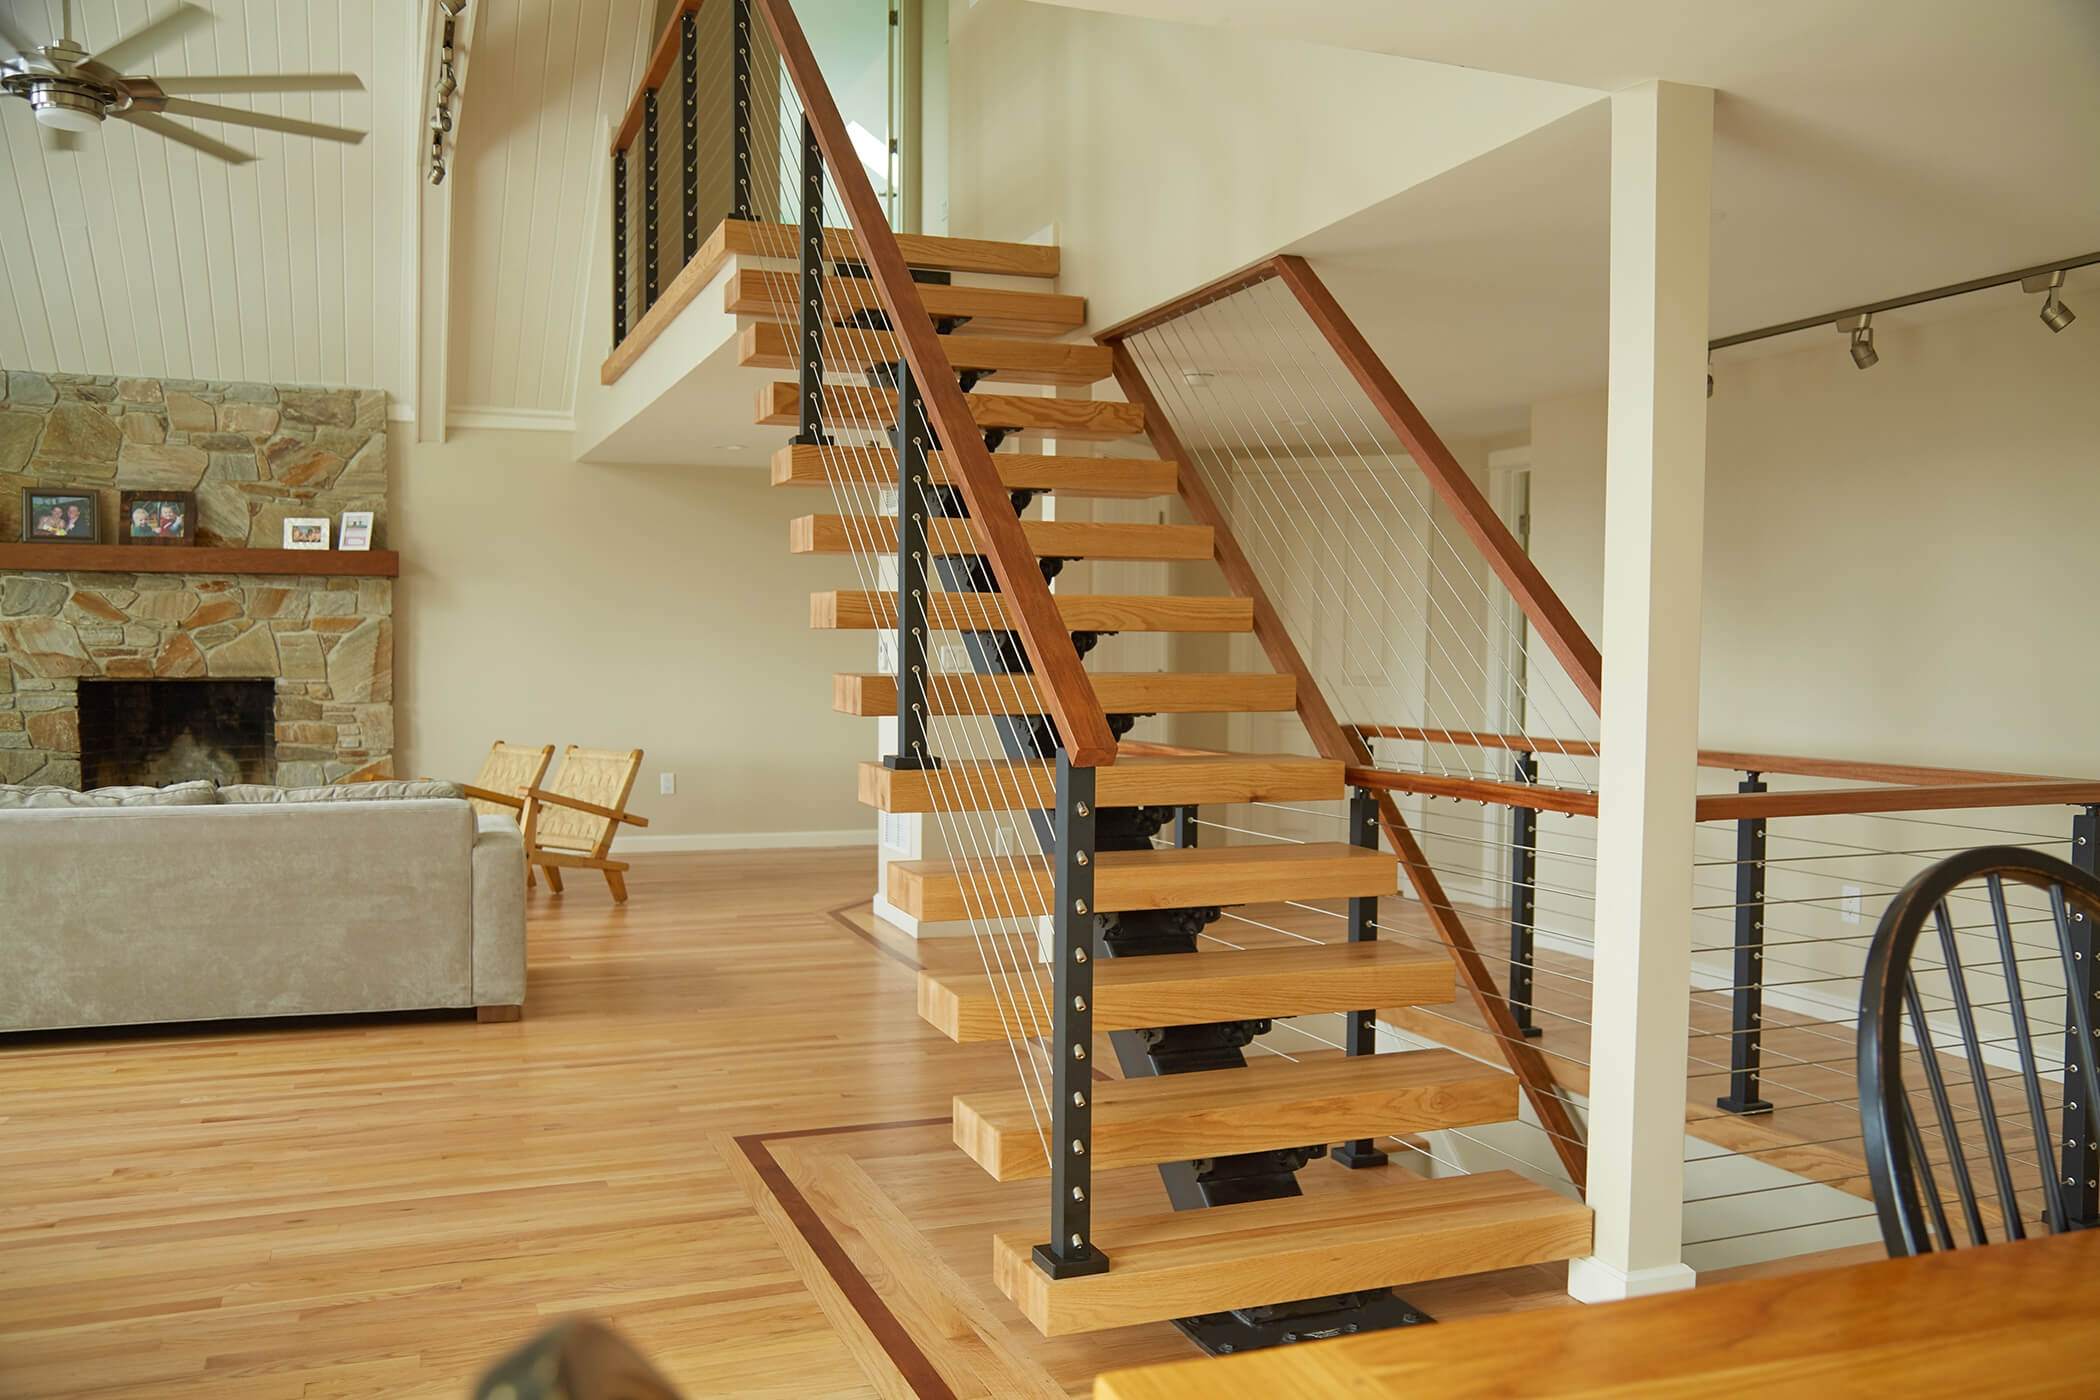 Are Floating Stairs Safe Open Stairs Floating Stair Safety   Converting Carpeted Stairs To Hardwood   Stair Case   Treads   Staircase Makeover   Stain   Wood Flooring